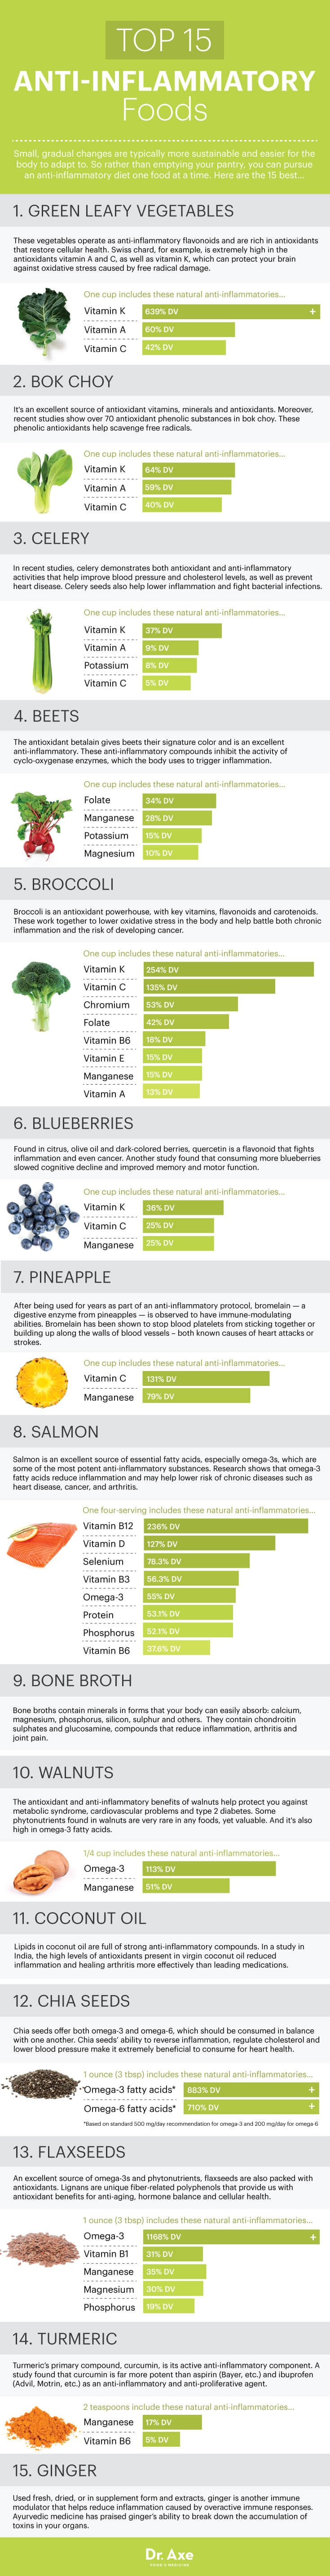 Image from Dr. Joshua Axe: Top 15 Anti-Inflammatory Foods + Anti-Inflammatory Diet (5)